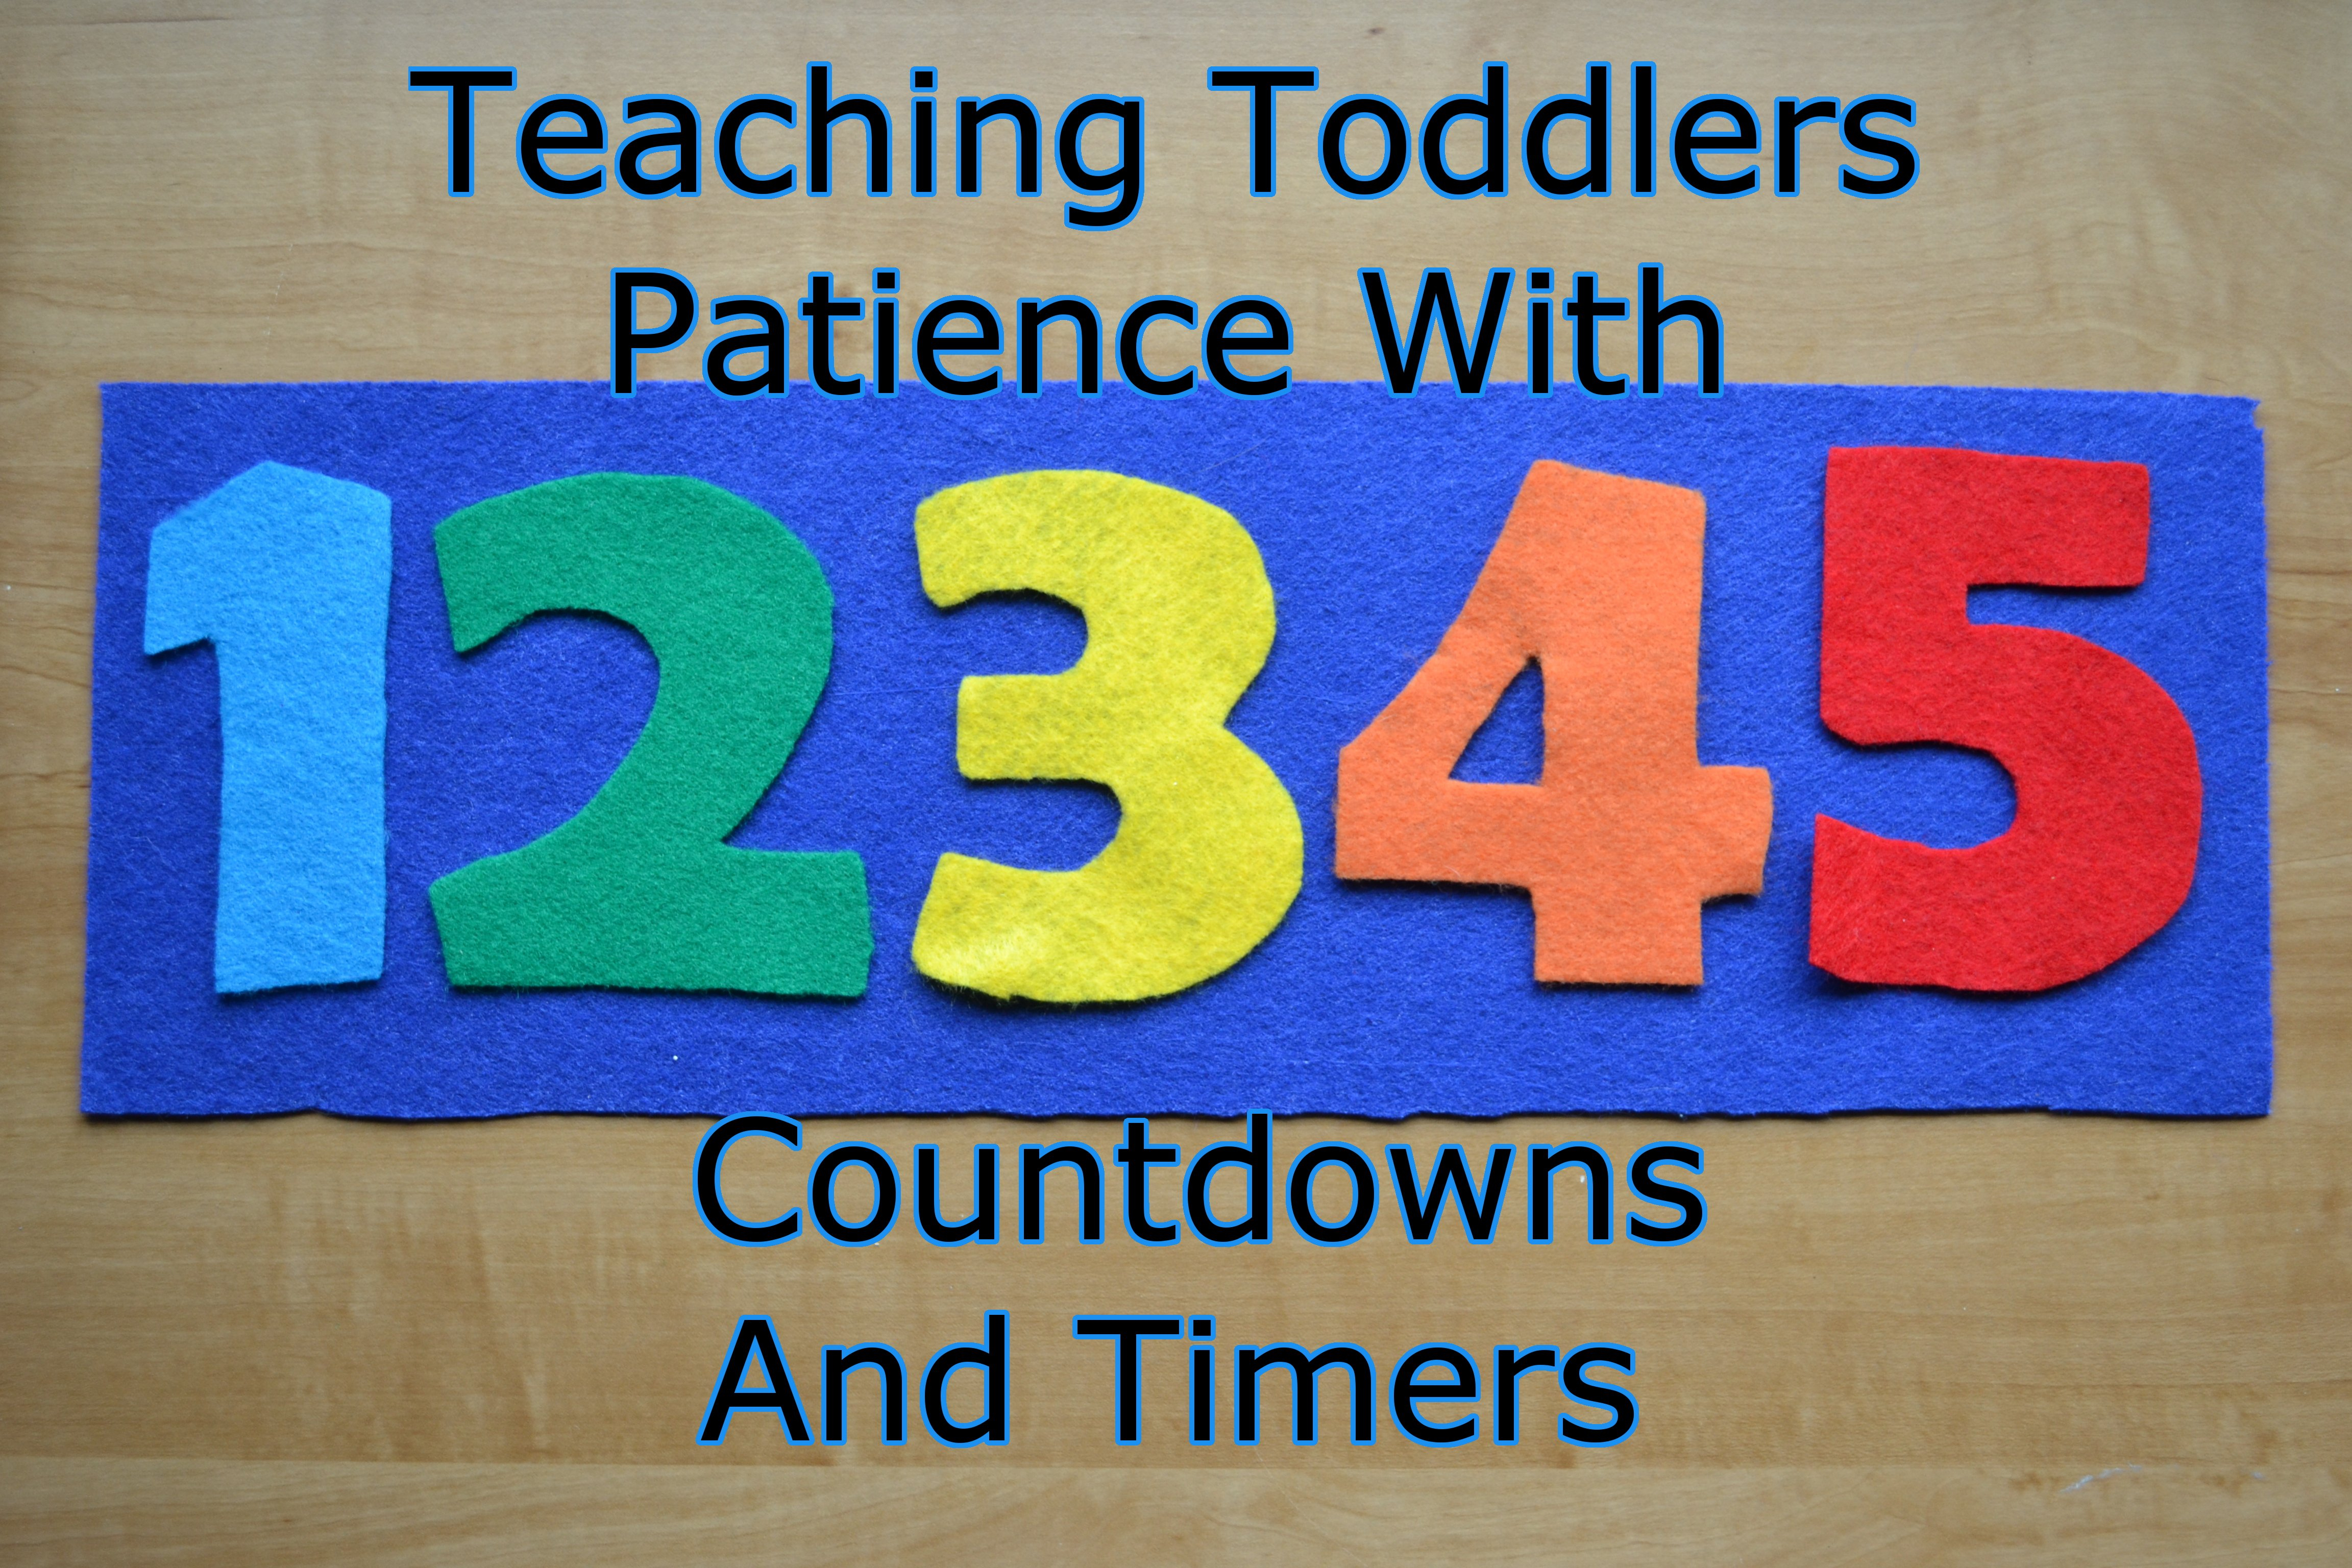 Teaching Toddlers Patience With Timers And Countdowns | The Short Timer Military Countdown